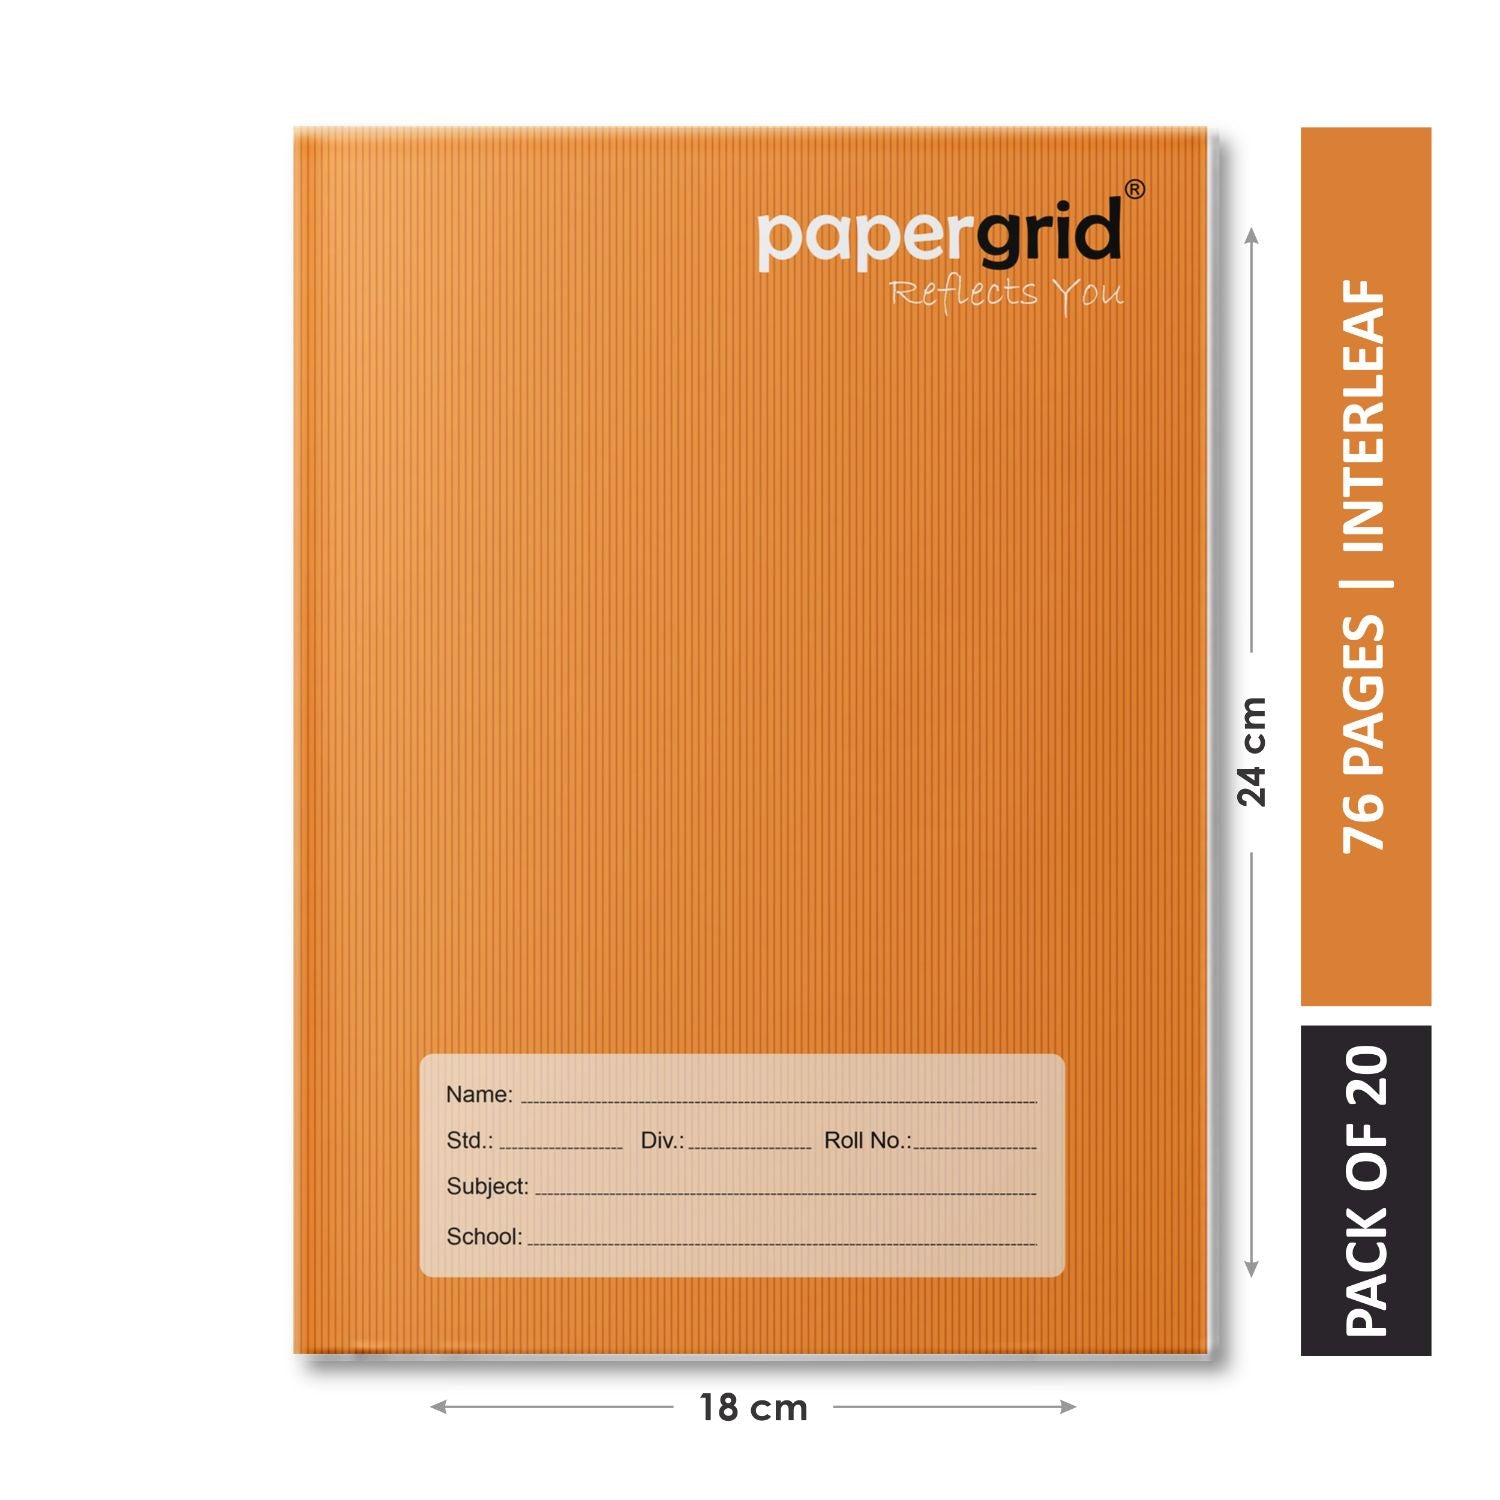 Papergrid Notebook - Brown Cover, King Size (24 cm x 18 cm), Interleaf, 76 Pages, Soft Cover - Pack of 20